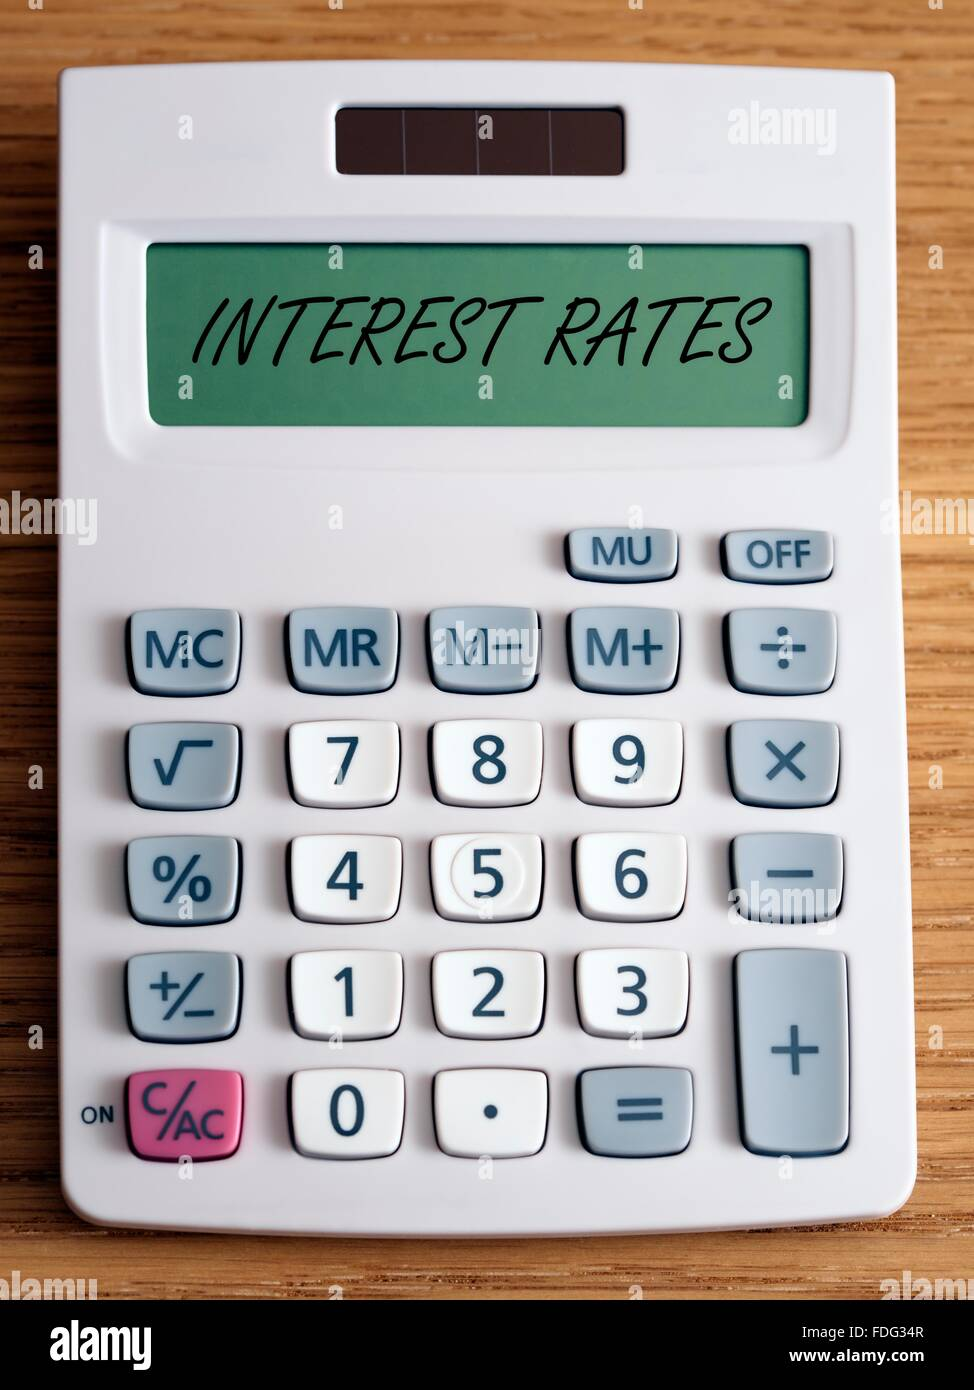 Interest rates on a calculator screen. - Stock Image